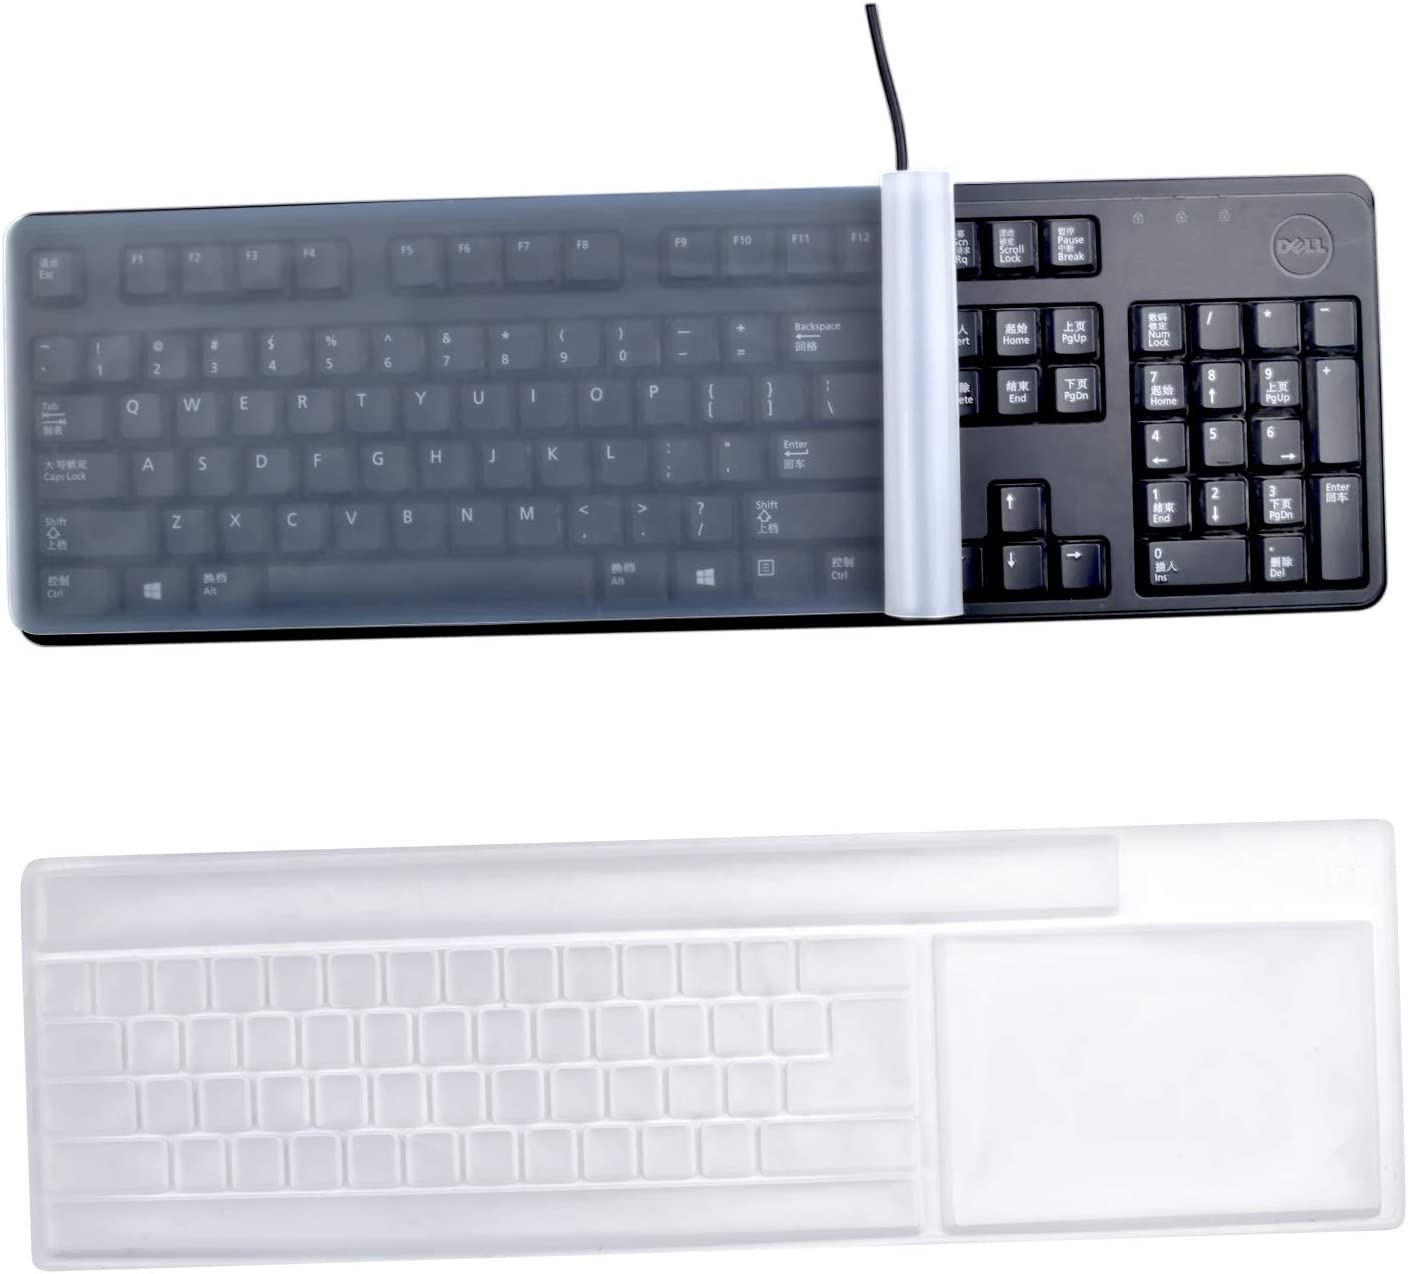 "Keyboard Protection Cover, 2 Pieces Anti-Dust Silicone Keyboard Protector Waterproof Clear Keyboard Skin Cover for Standard Size PC Computer Desktop Keyboards - Size : 17.6"" x 5.5"""